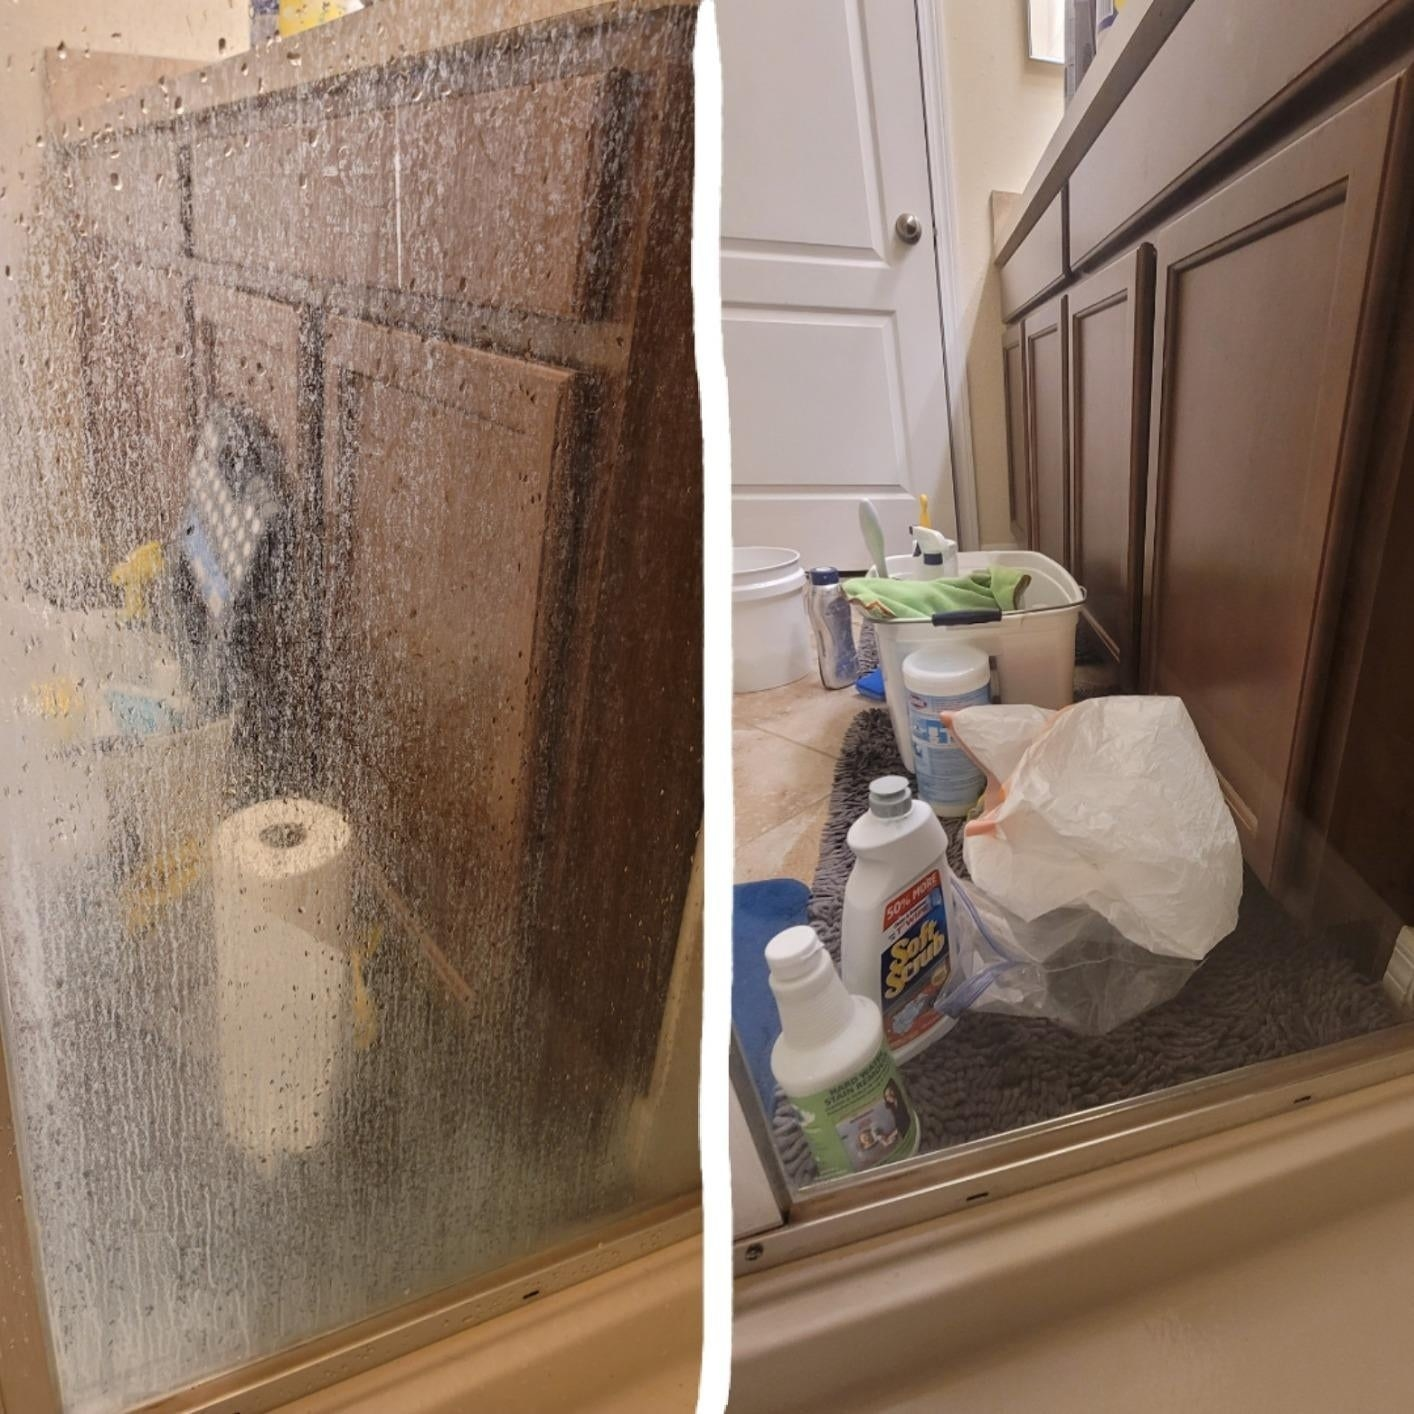 on left, water-stained clear shower door. on right, clear shower door after using the cleaner above